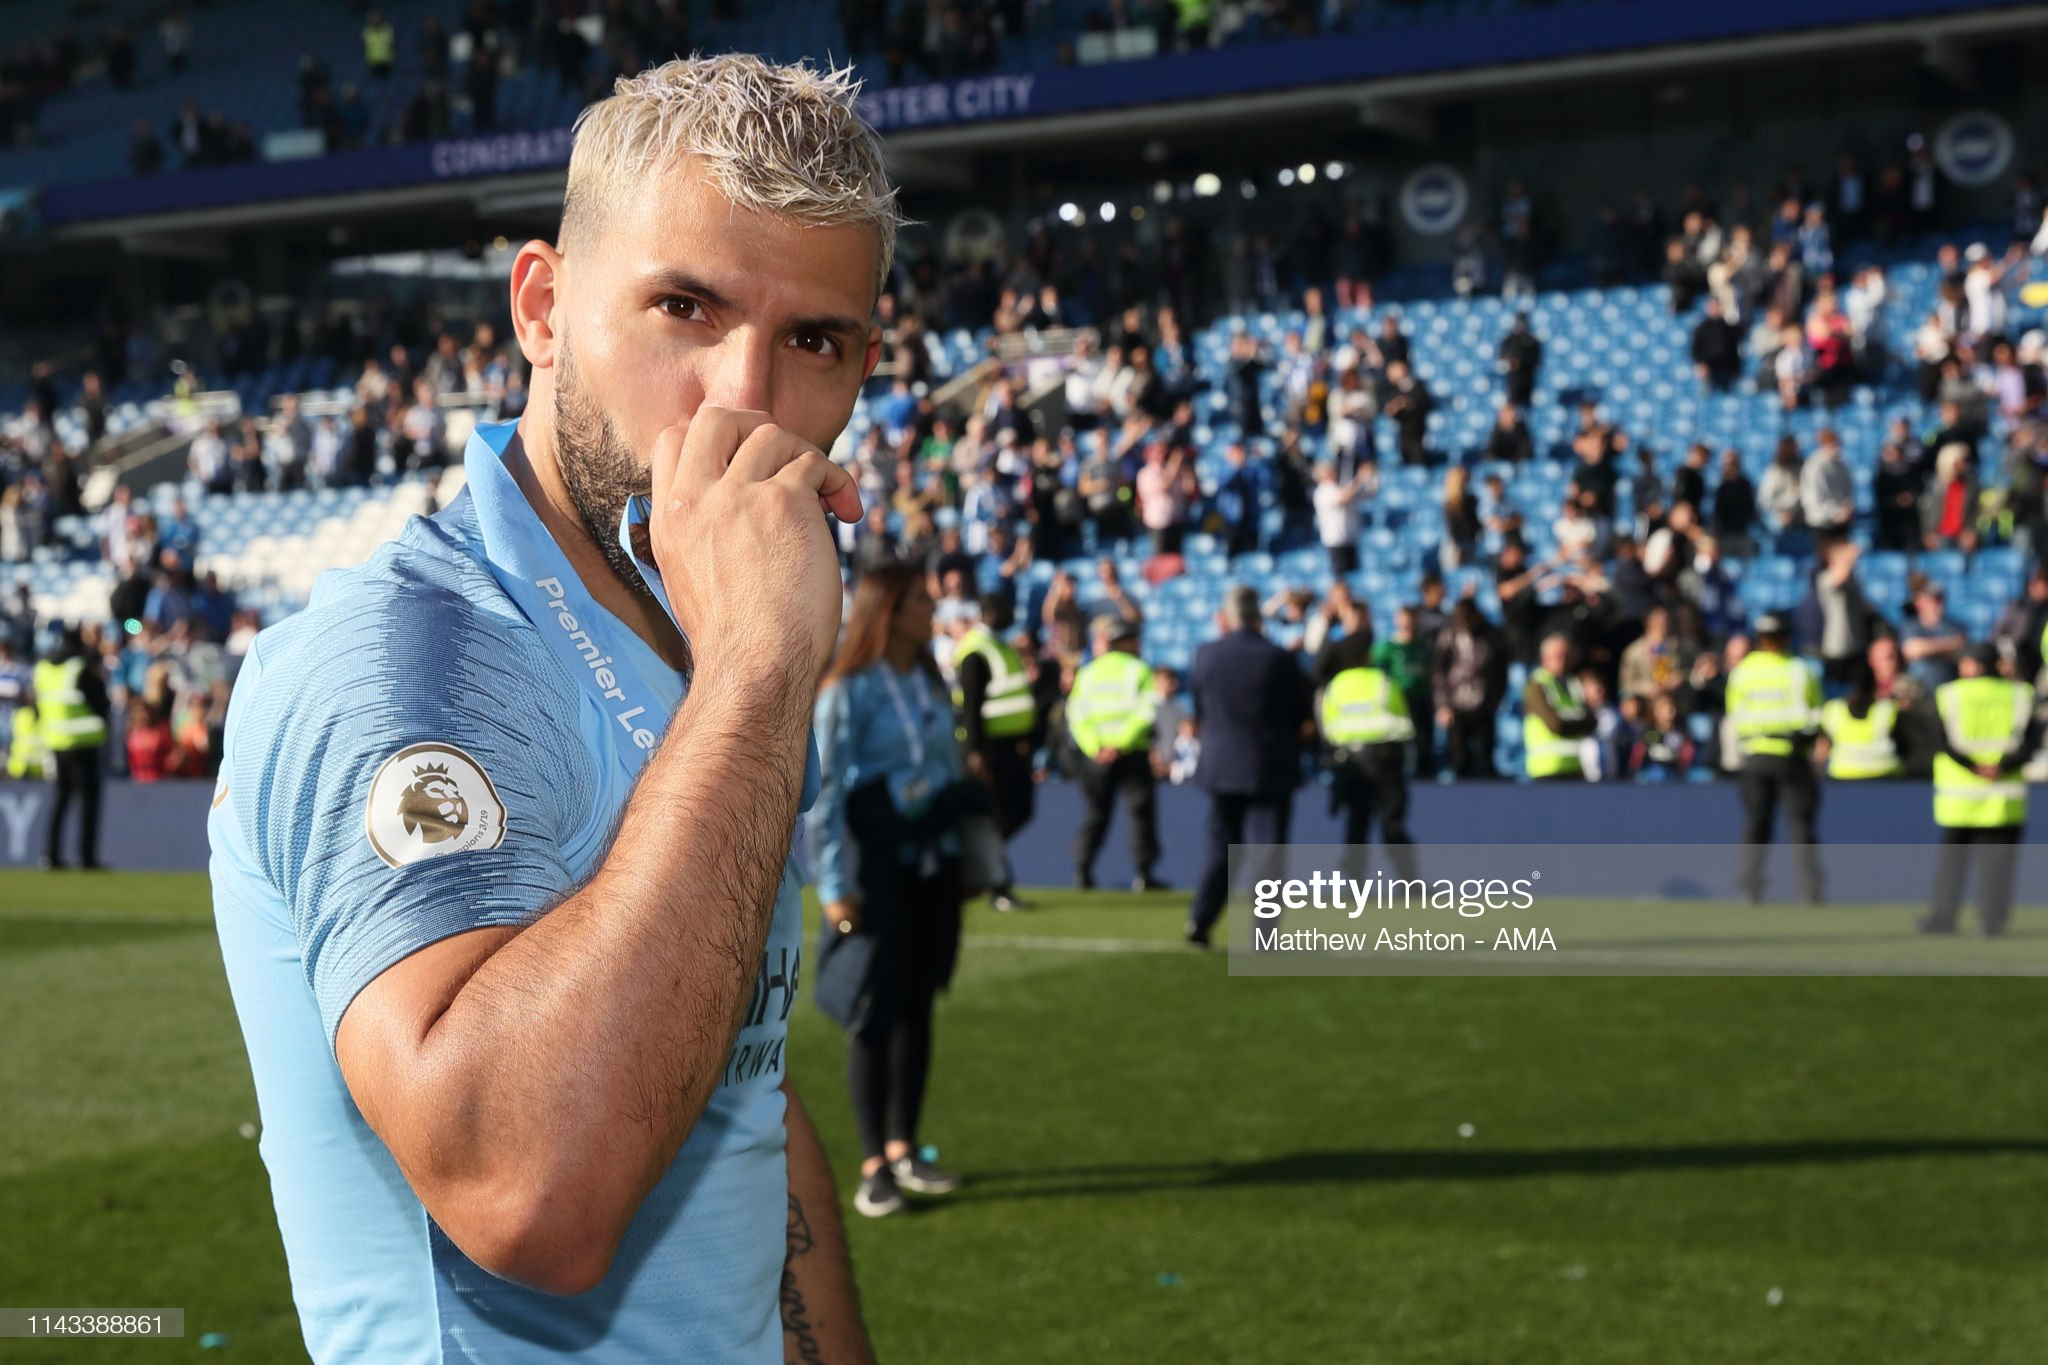 https://media.gettyimages.com/photos/sergio-aguero-of-manchester-city-with-his-winners-medal-during-the-picture-id1143388861?s=2048x2048